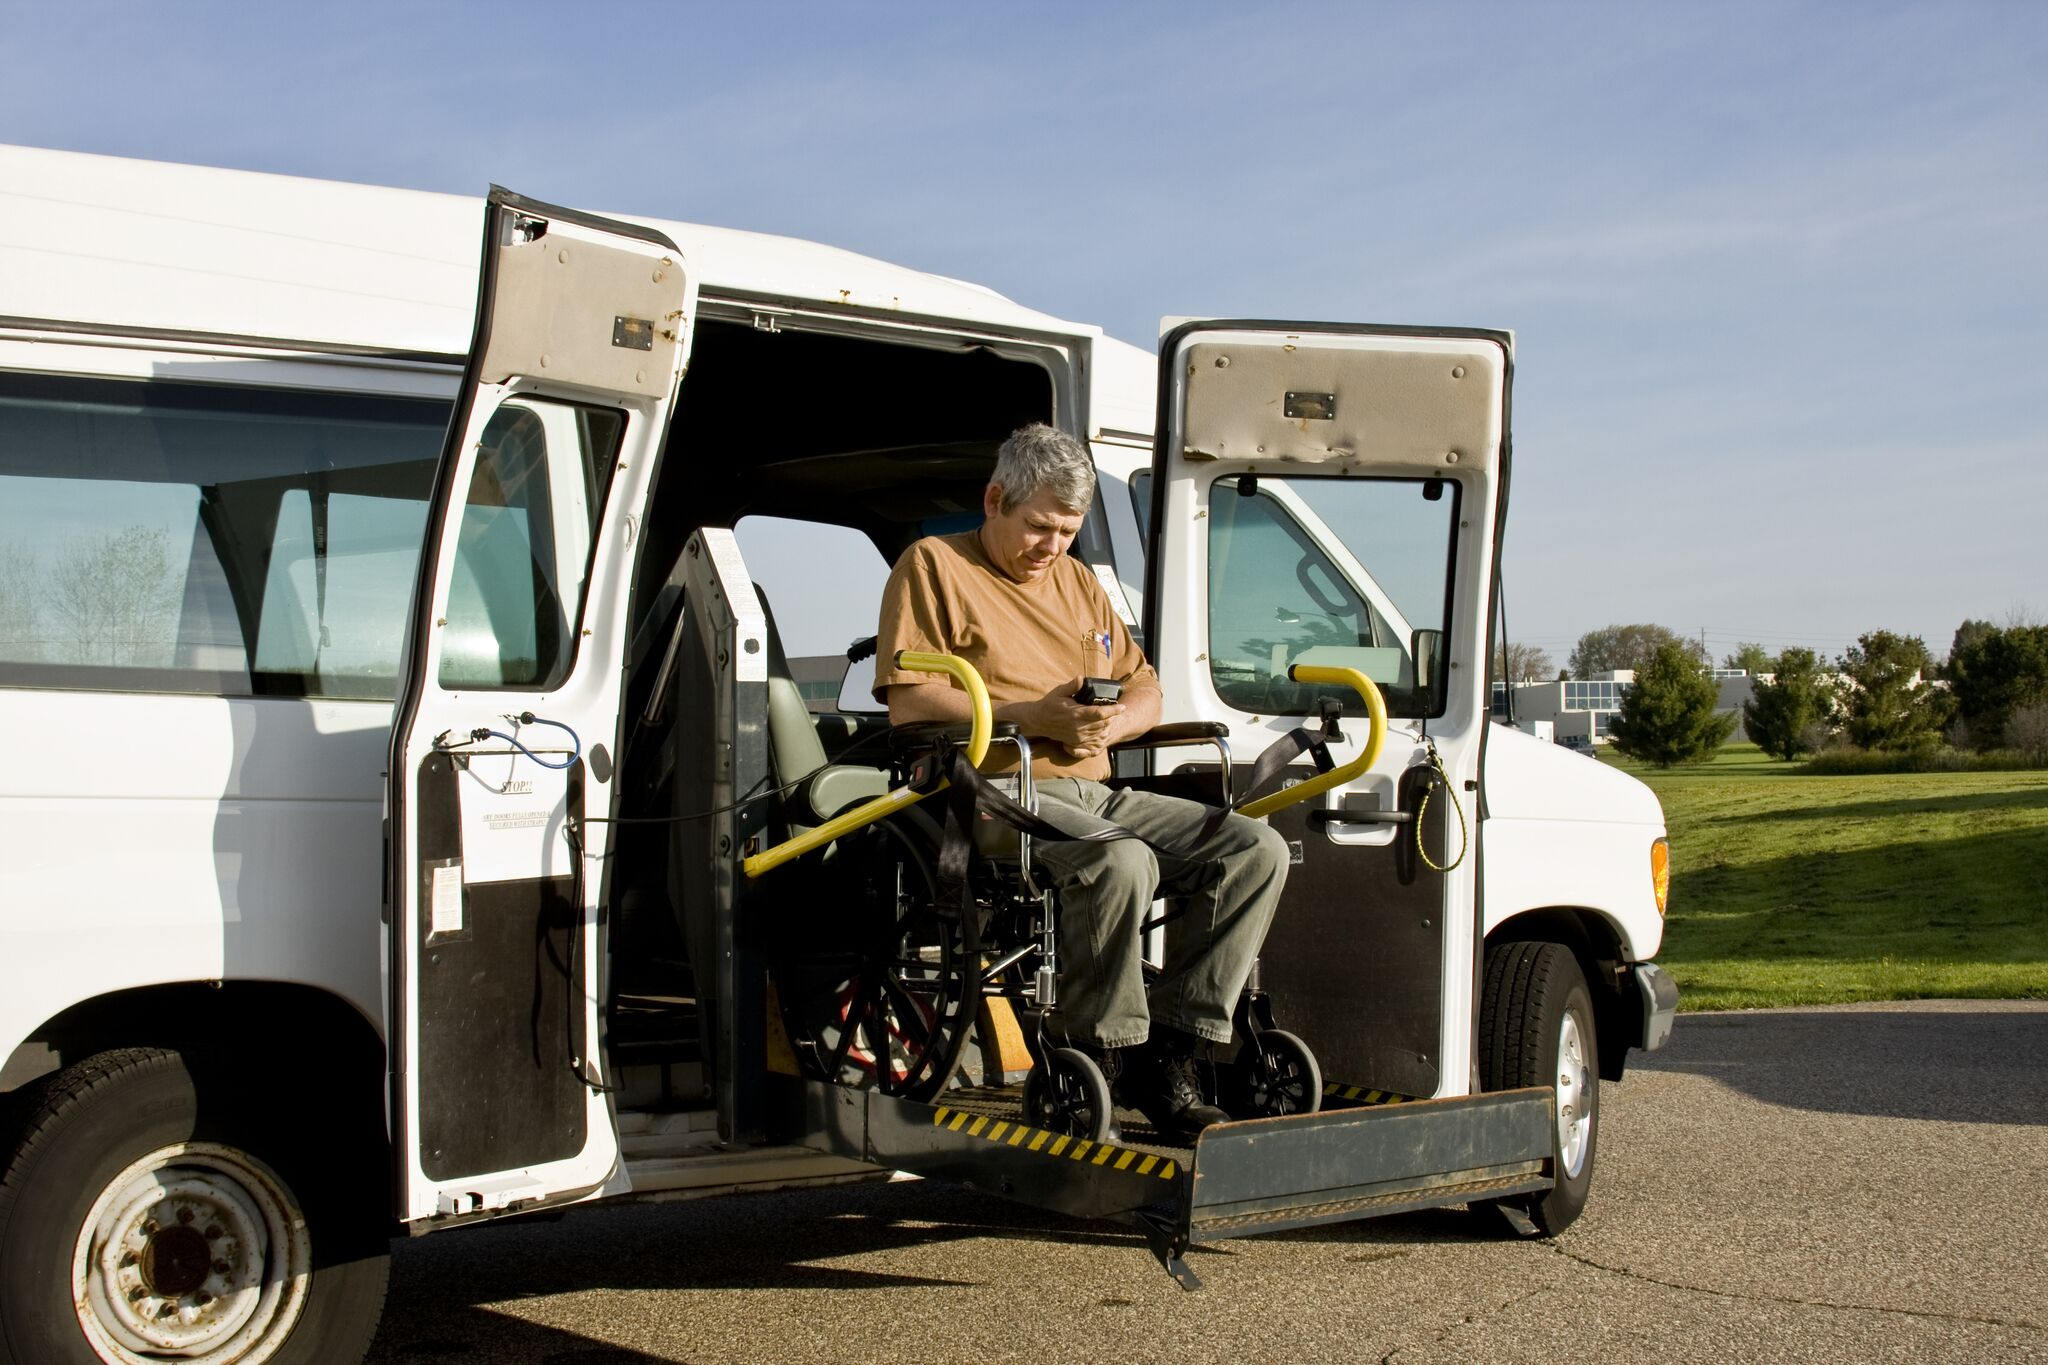 buying wheelchair accessible vehicles can be easy with our tips